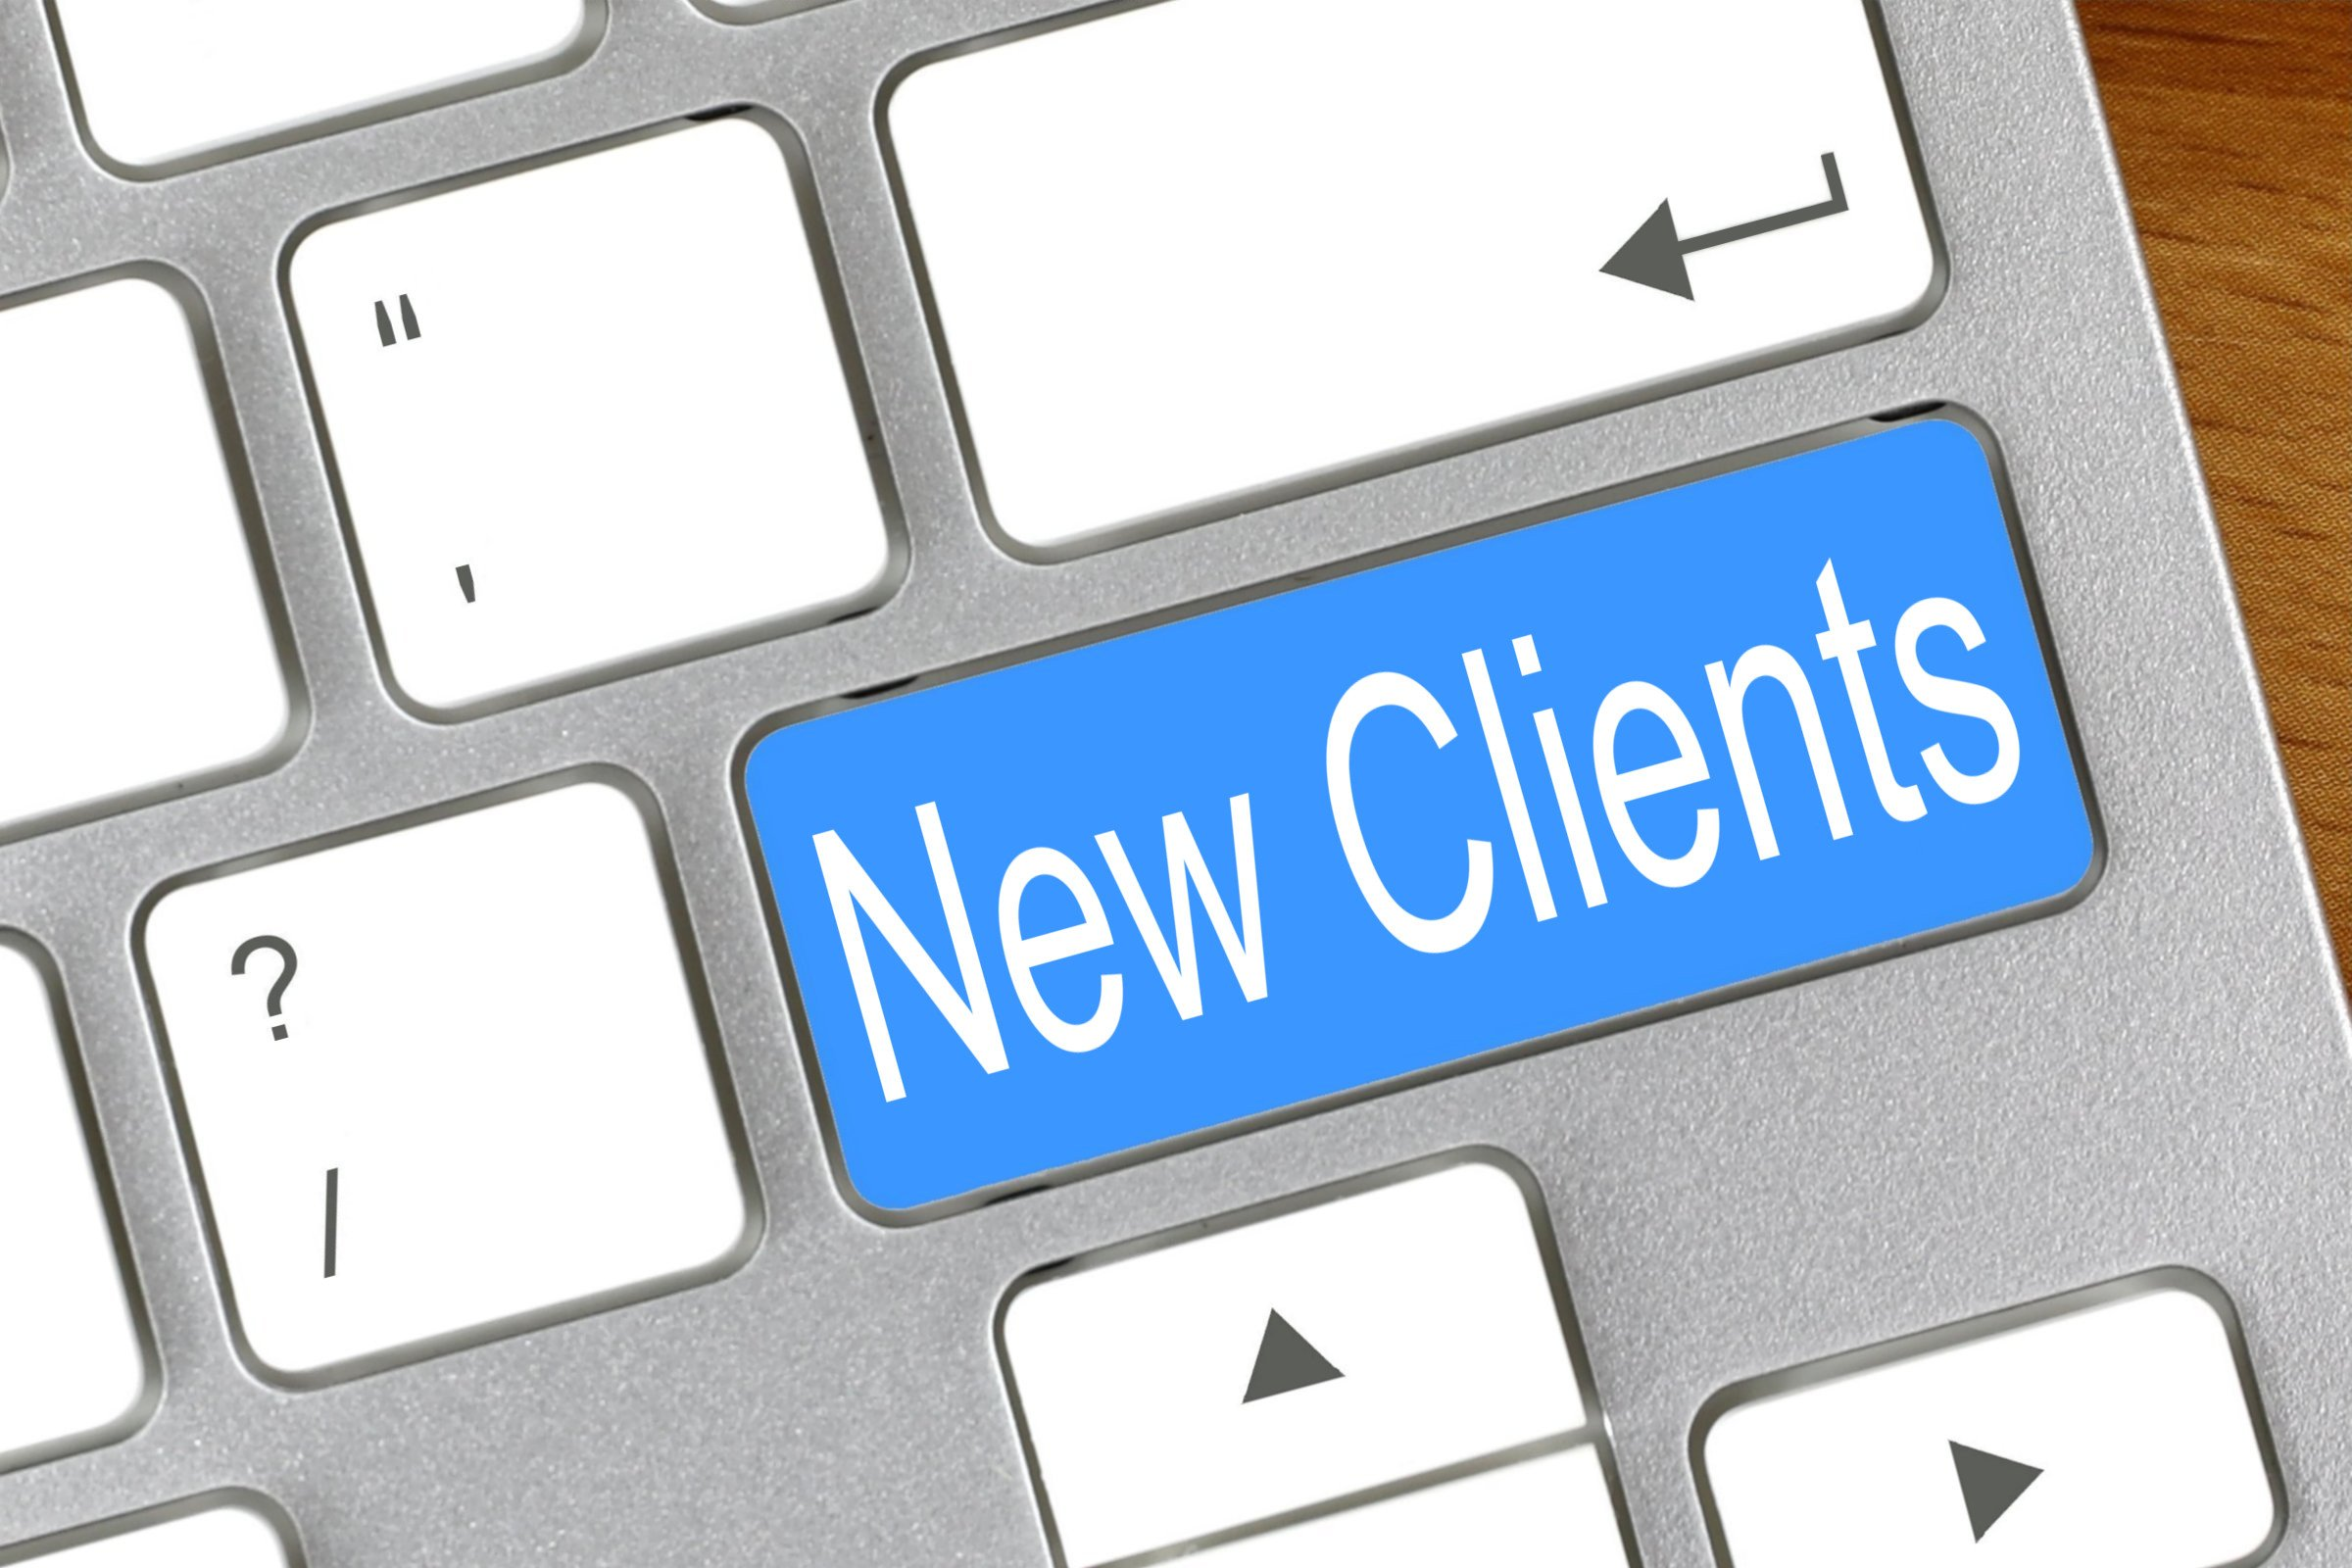 New Clients